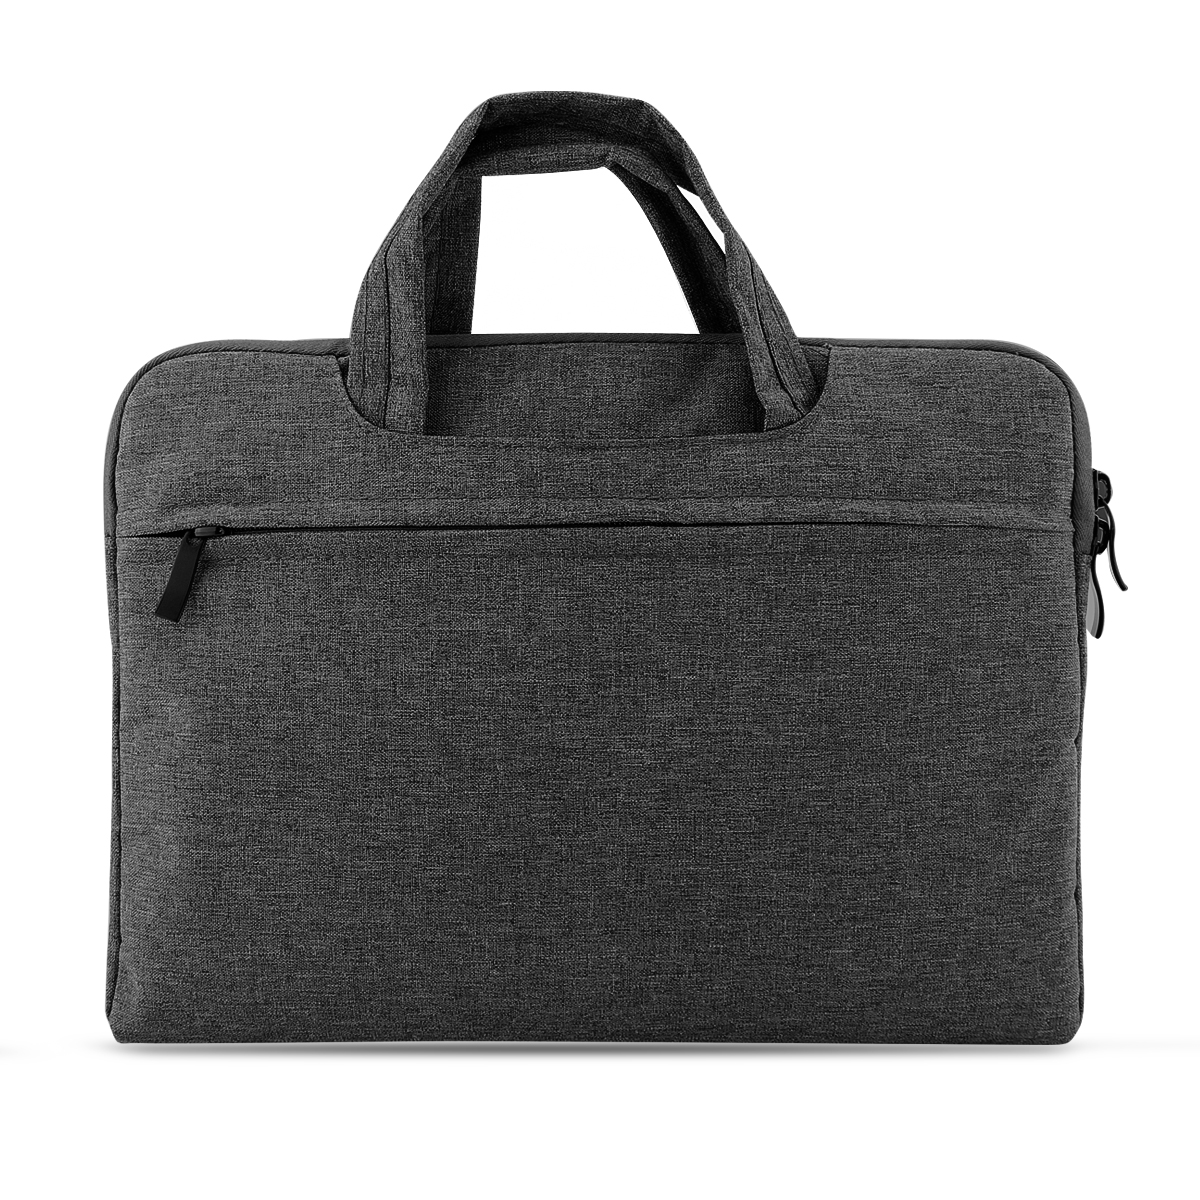 9 12 Inch Universal Tablet Cover Handbag Business Leisure Style Shockproof Laptop Briefcase Tablet Bag For iPad Pro 11 Inch 2018 in Tablets e Books Case from Computer Office